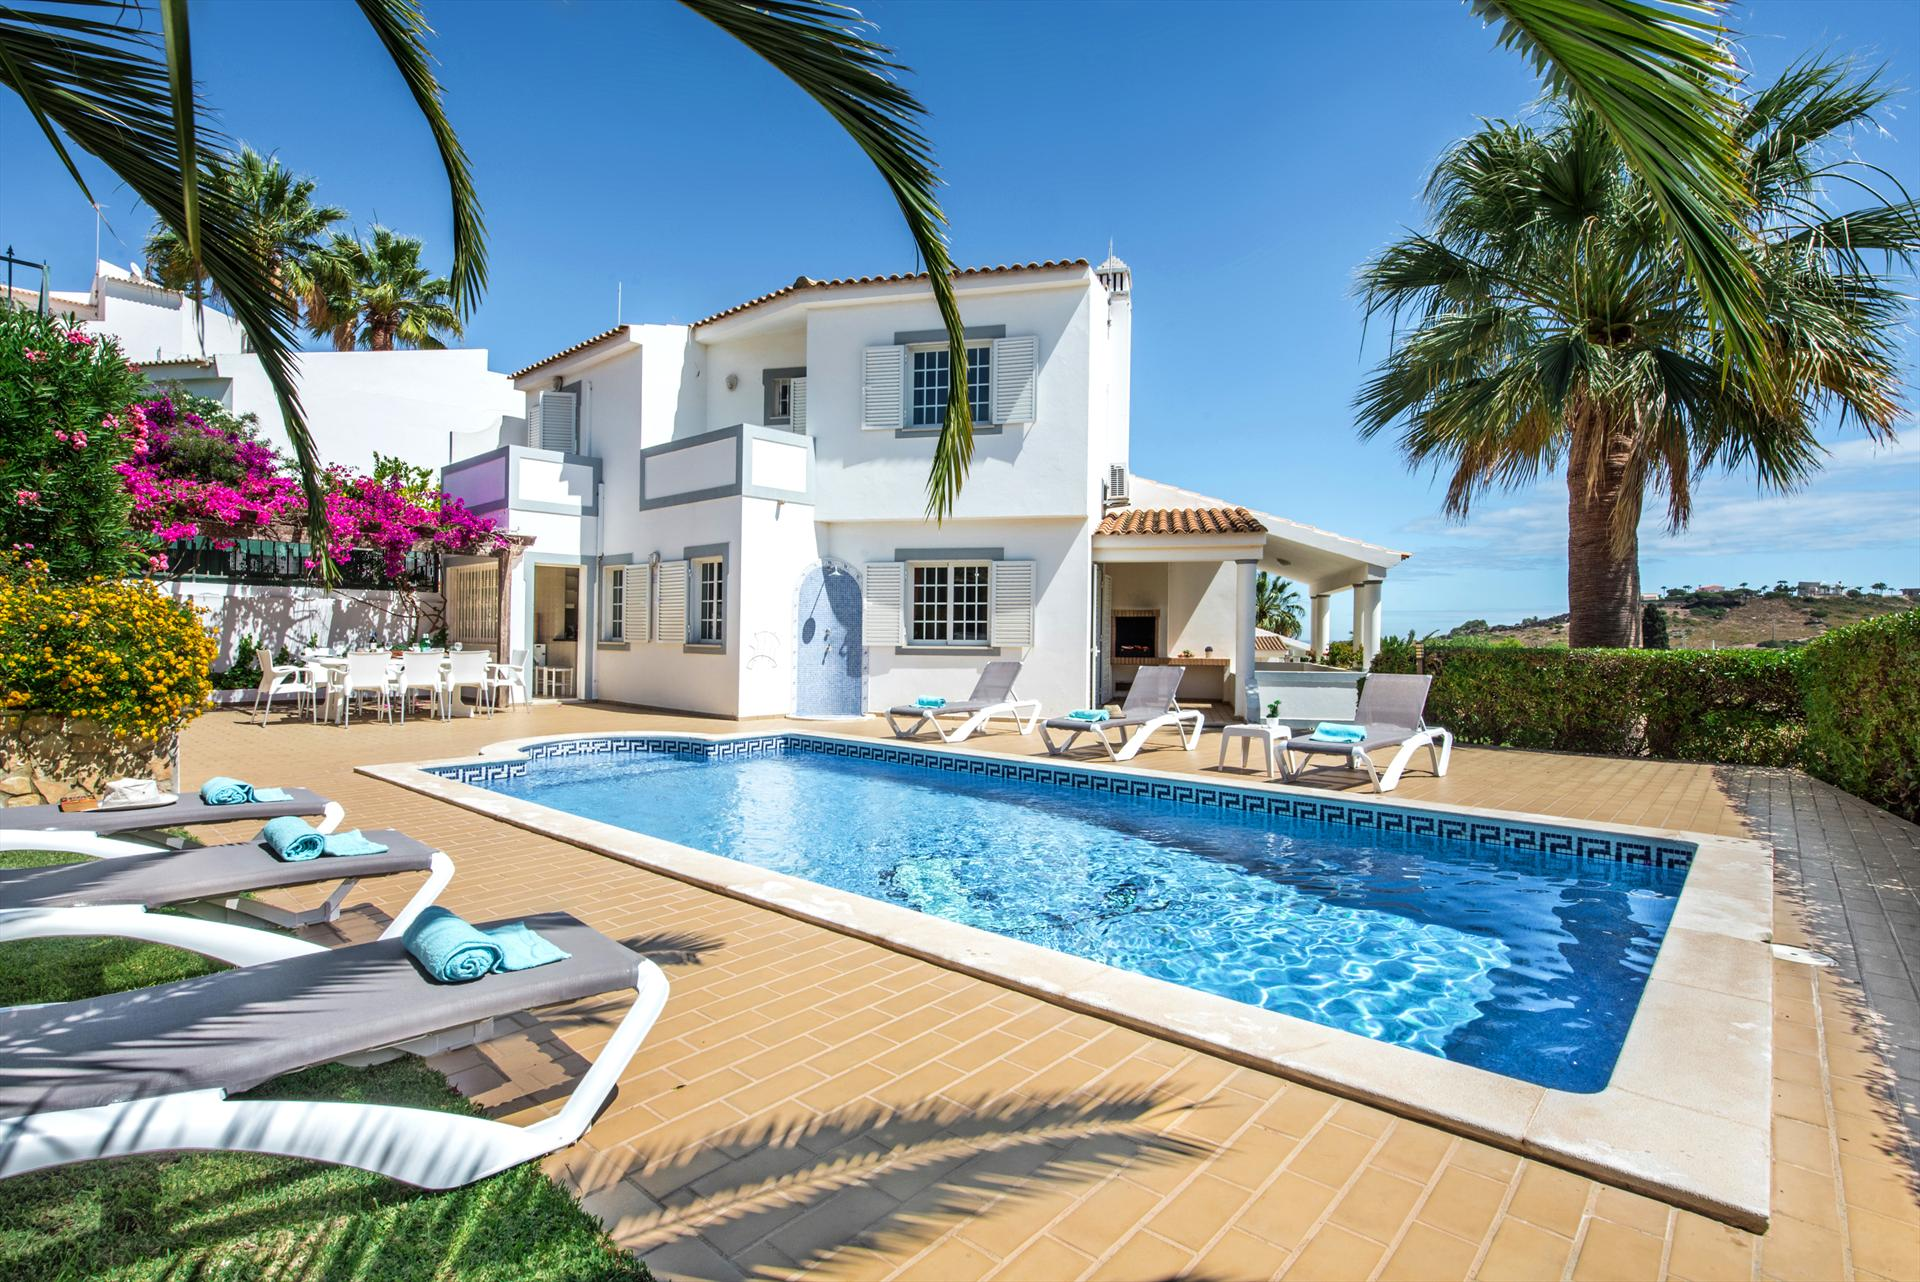 Albufeira Villa LS214, Classic and nice villa in Albufeira, on the Algarve, Portugal  with private pool for 8 persons.....